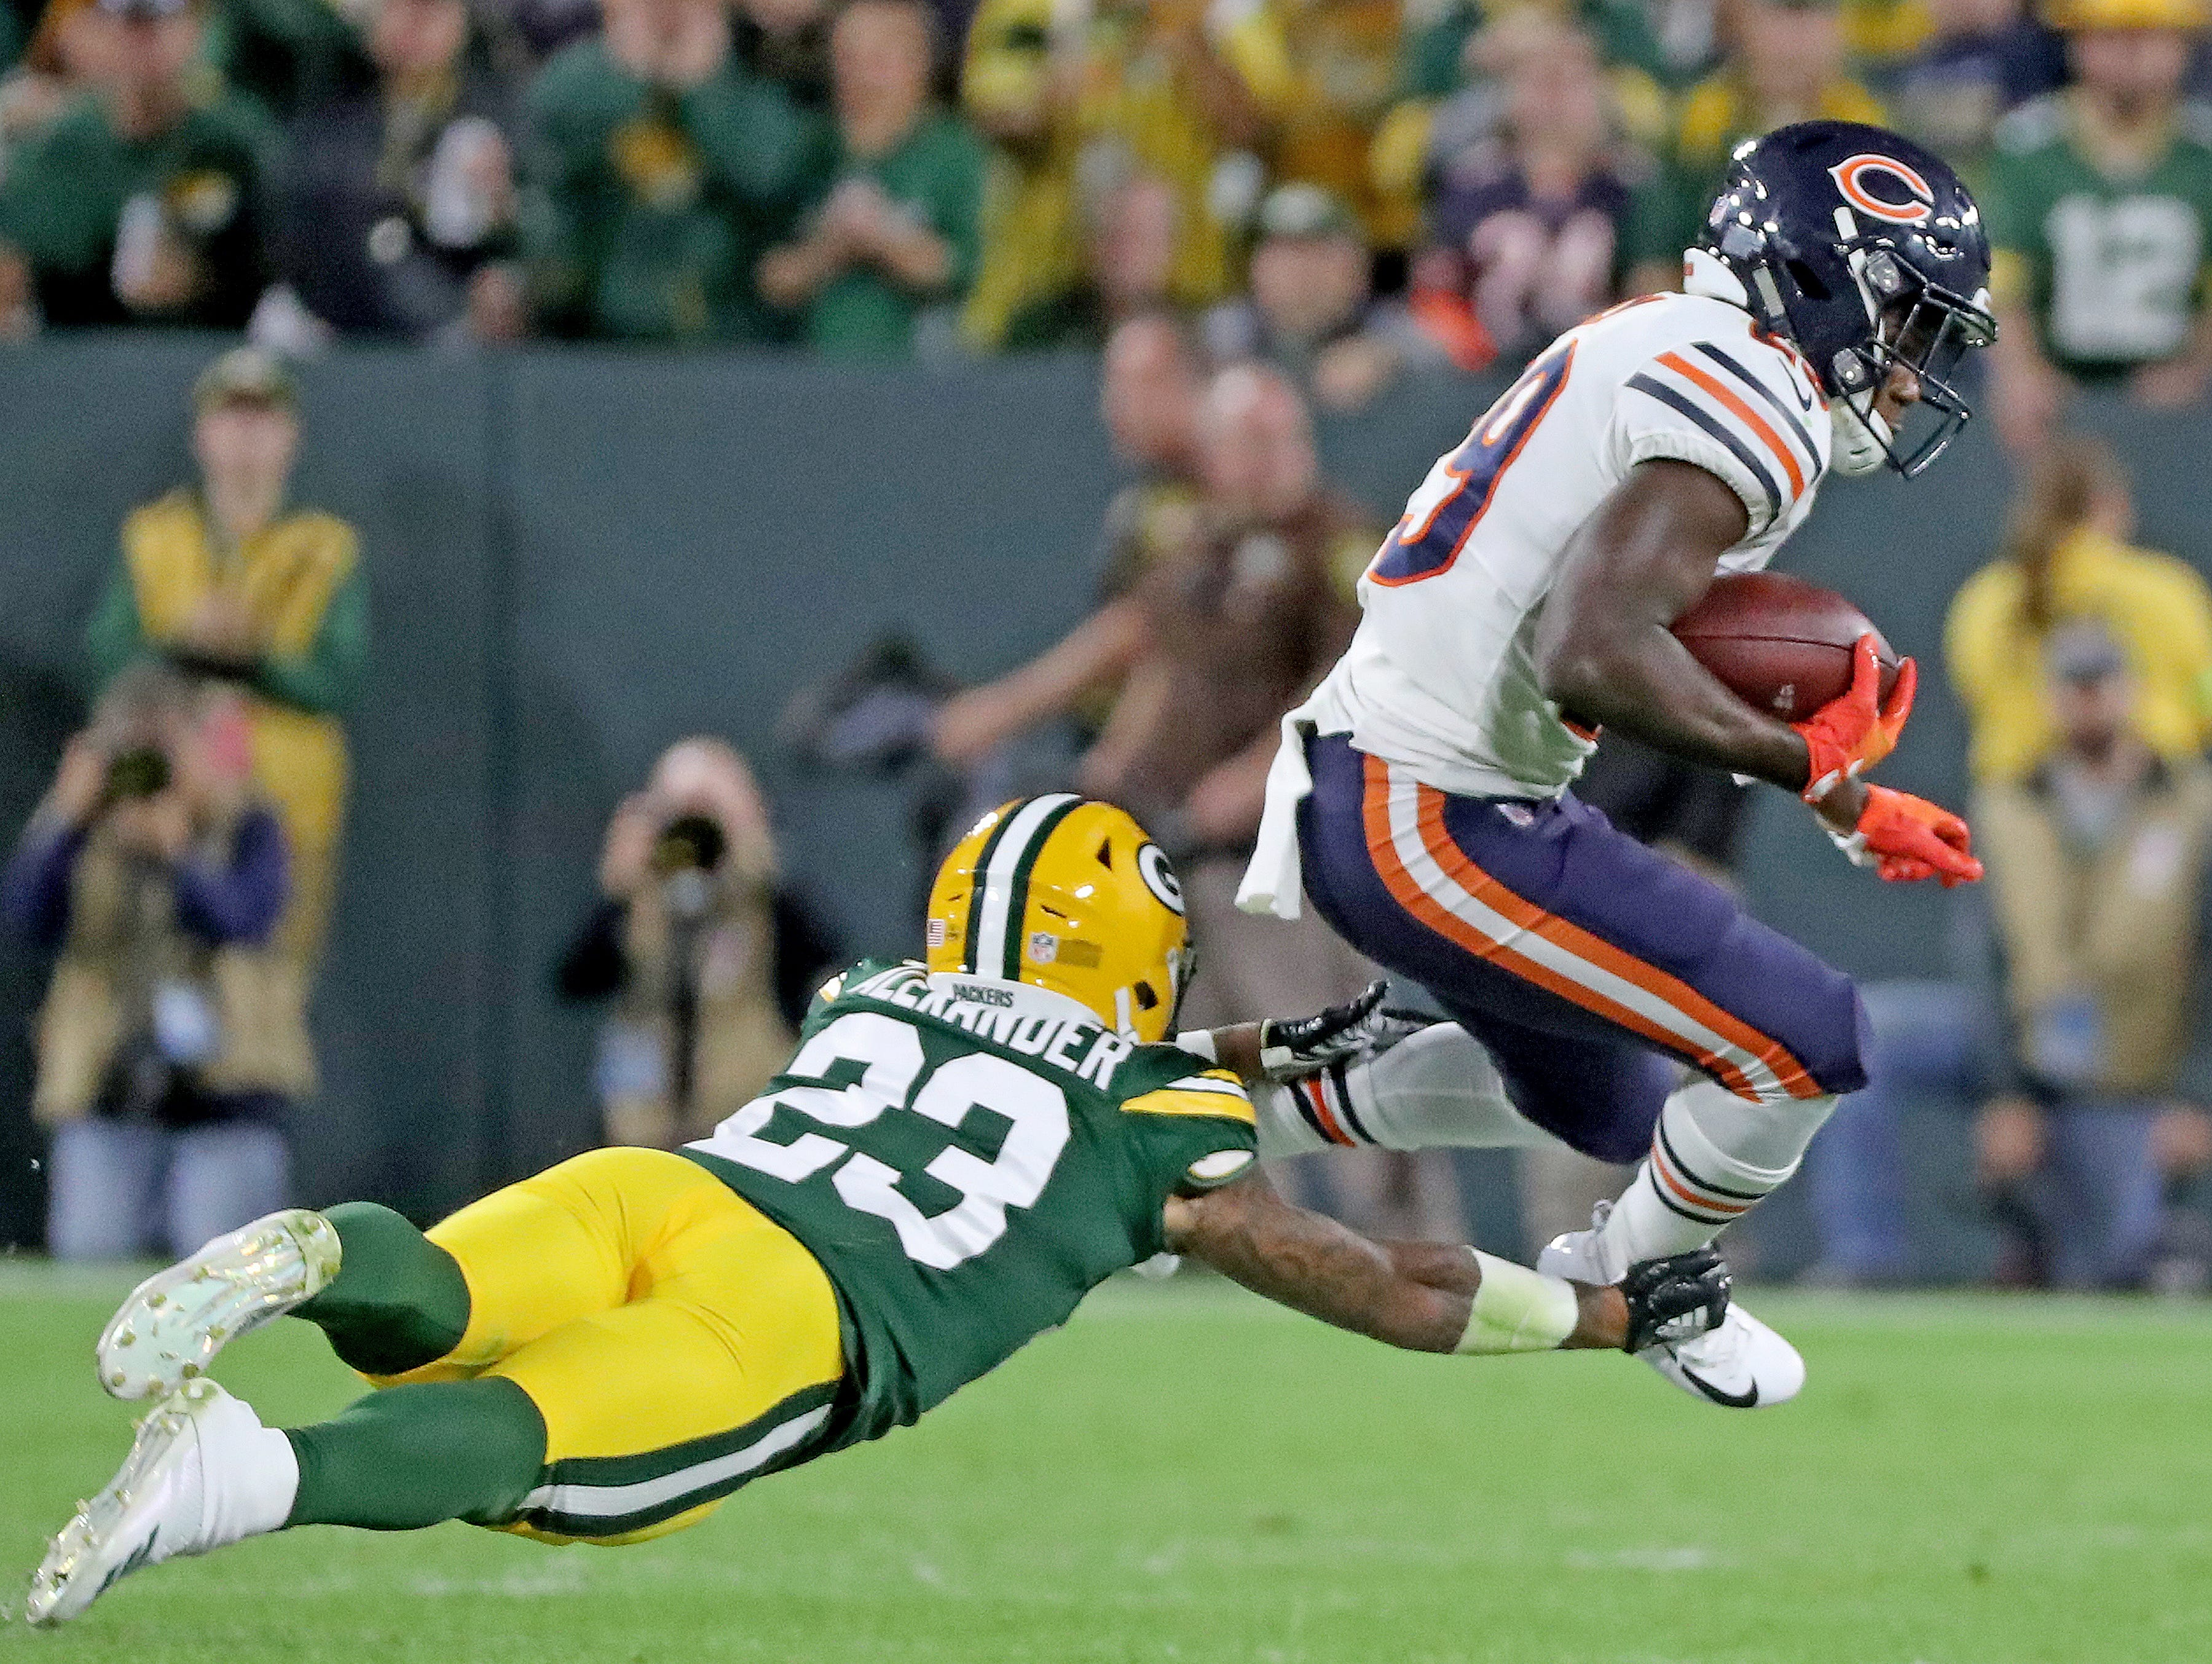 Green Bay Packers cornerback Jaire Alexander (23) dives at the feet of running back Tarik Cohen (29) against the Chicago Bears Sunday, September 9, 2018 at Lambeau Field in Green Bay, Wis.